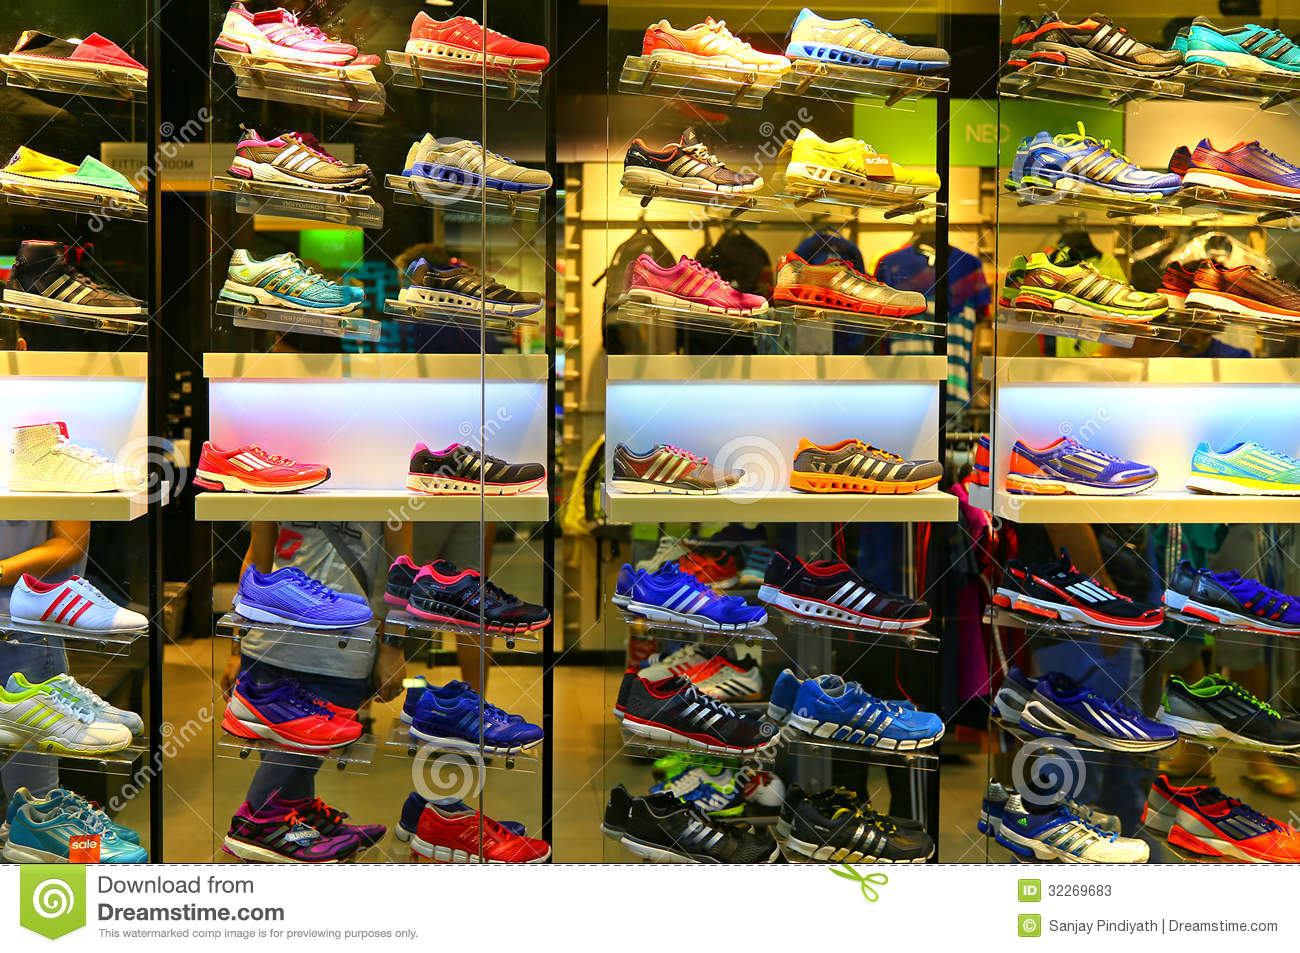 Adidas sports shoes editorial stock photo. Image of rubber - 32269683